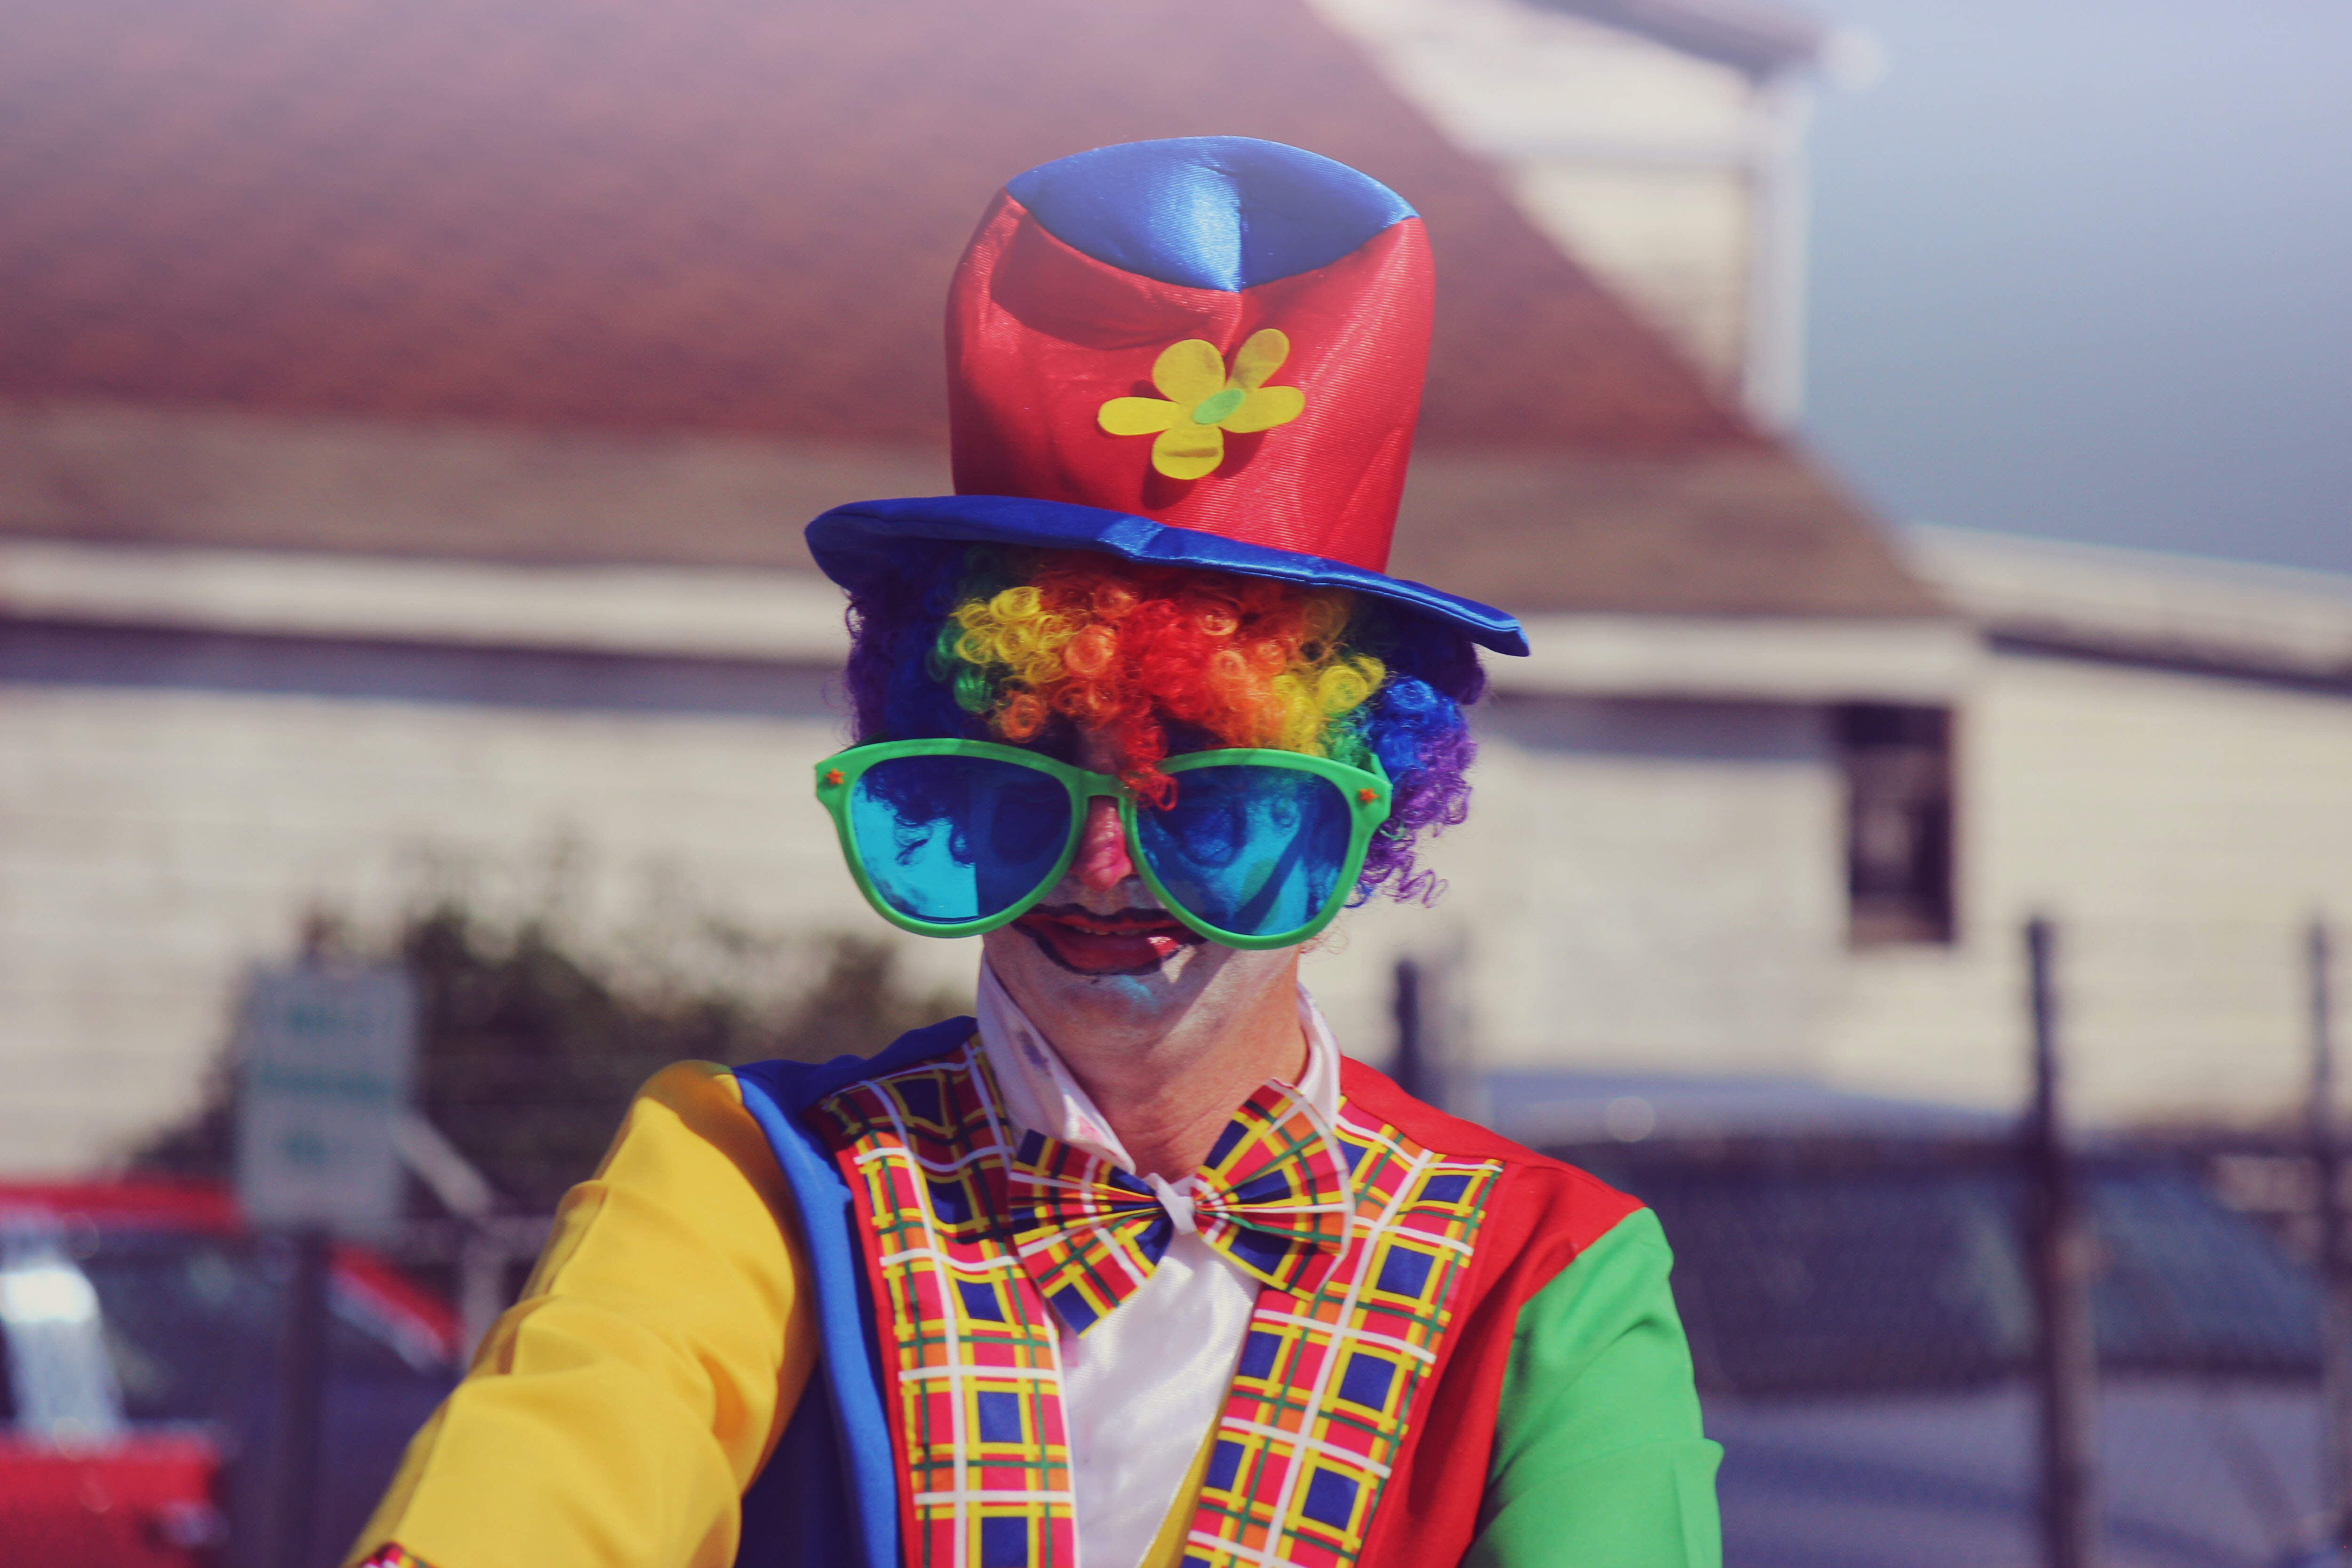 Colorful clown dressed up in a rainbow colored costume